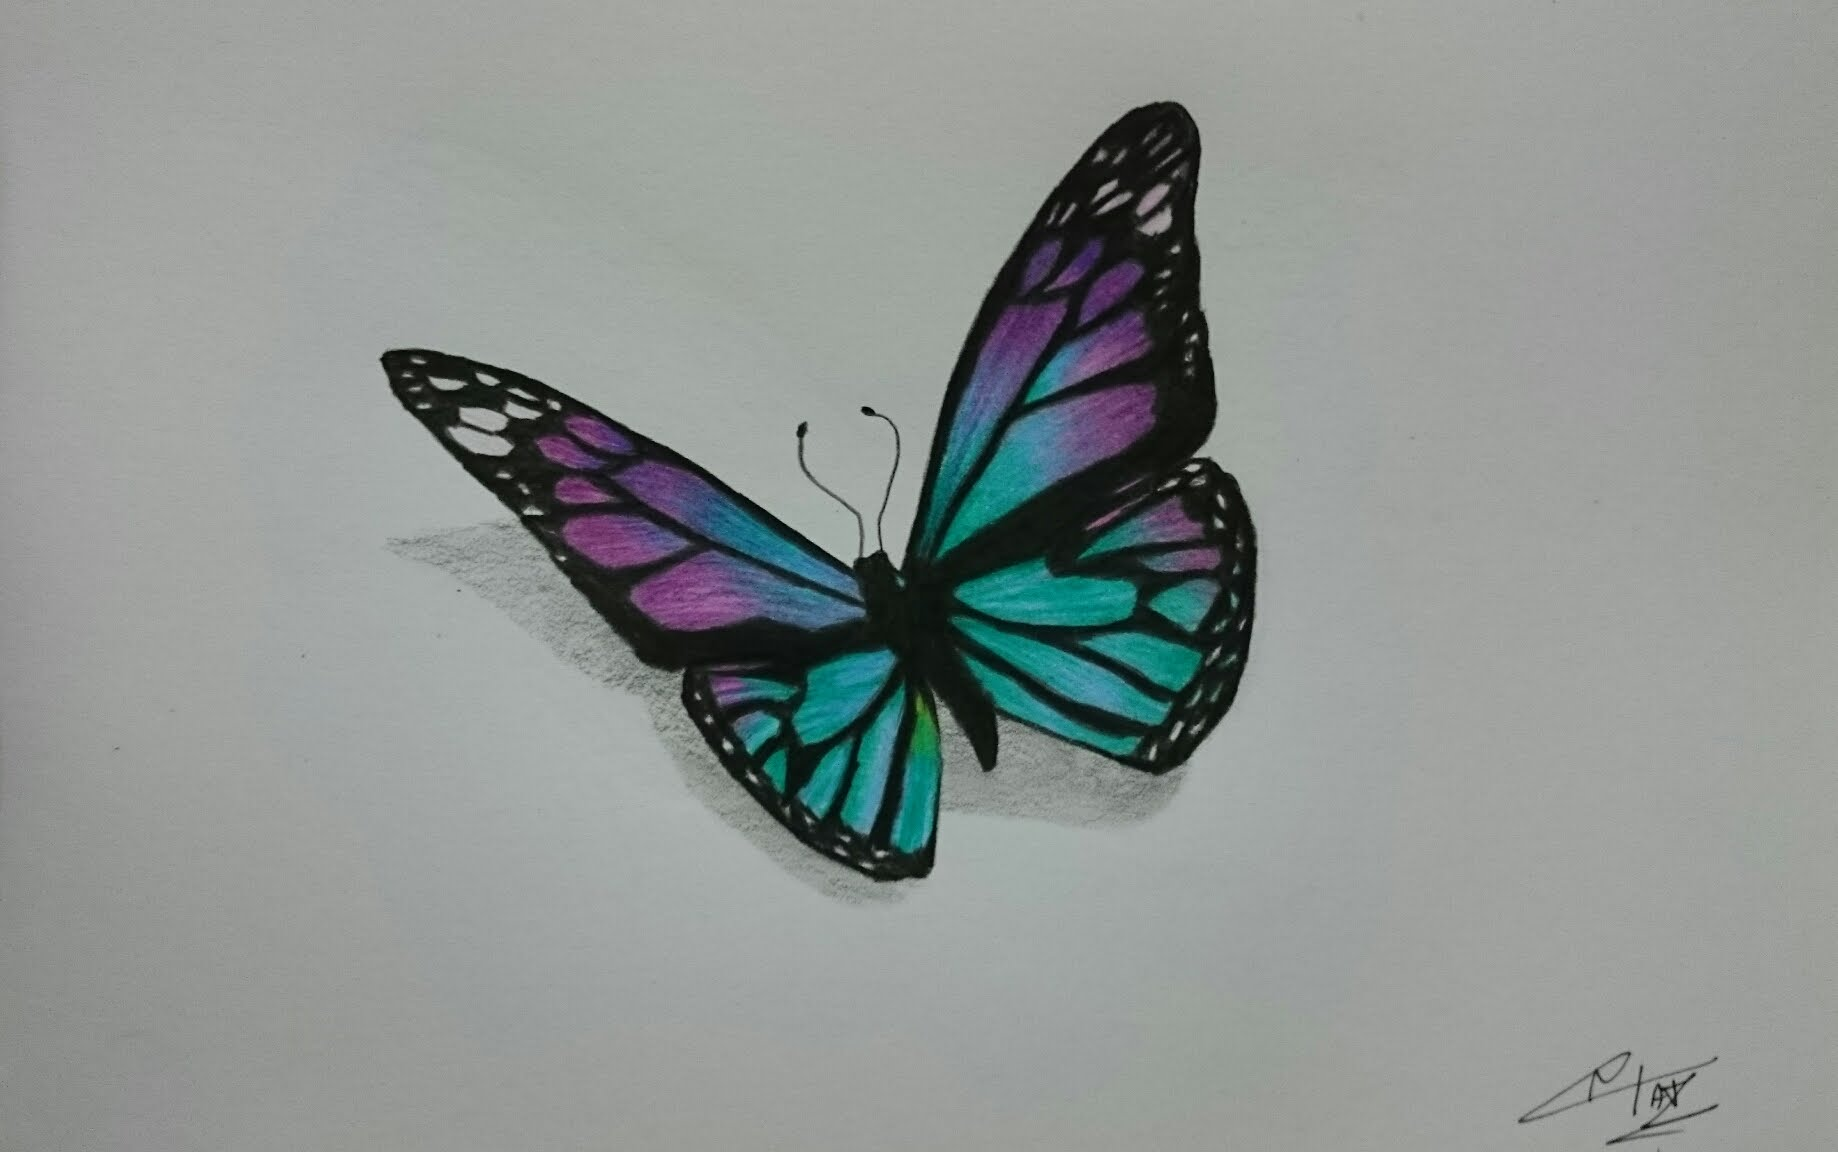 1838x1152 How To Draw A Realistic Butterfly With Colored Pencils